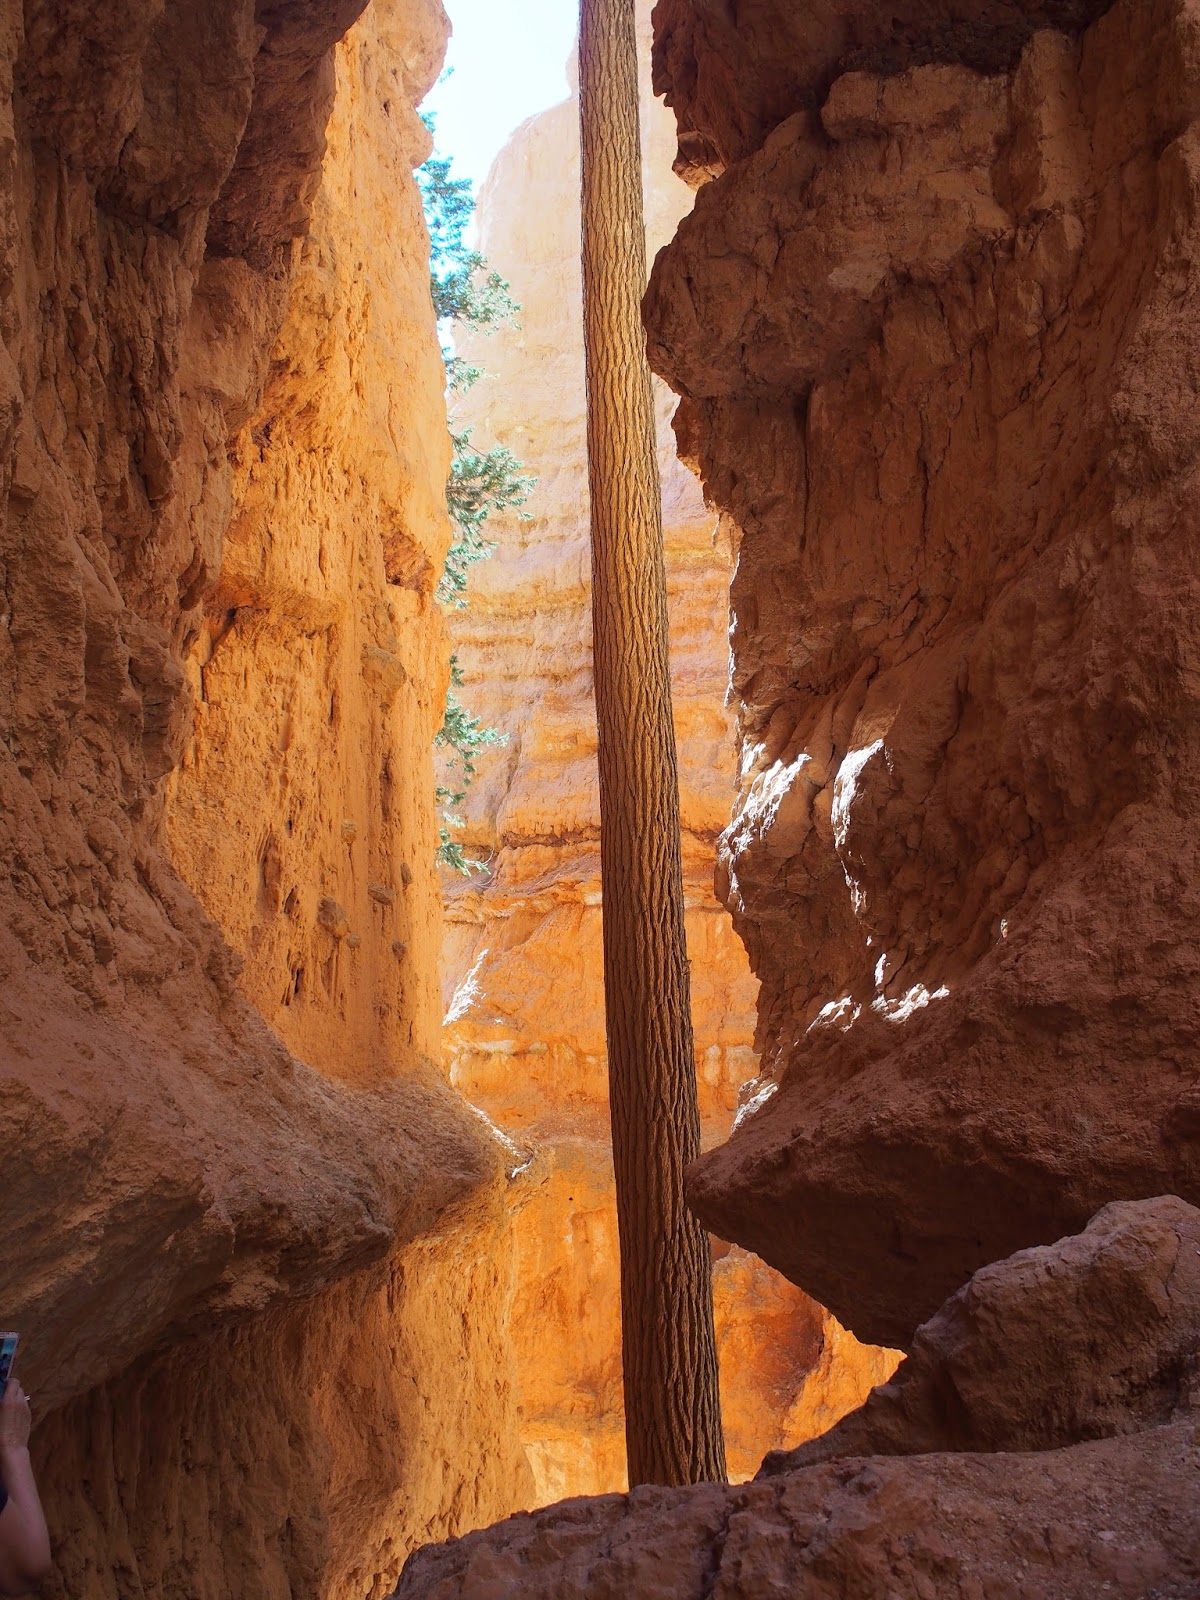 A Tree Grows on Wall Street II, #bryce #brycecanyon #wallstreet #navajolooptrail #navajoloop #utah 2014